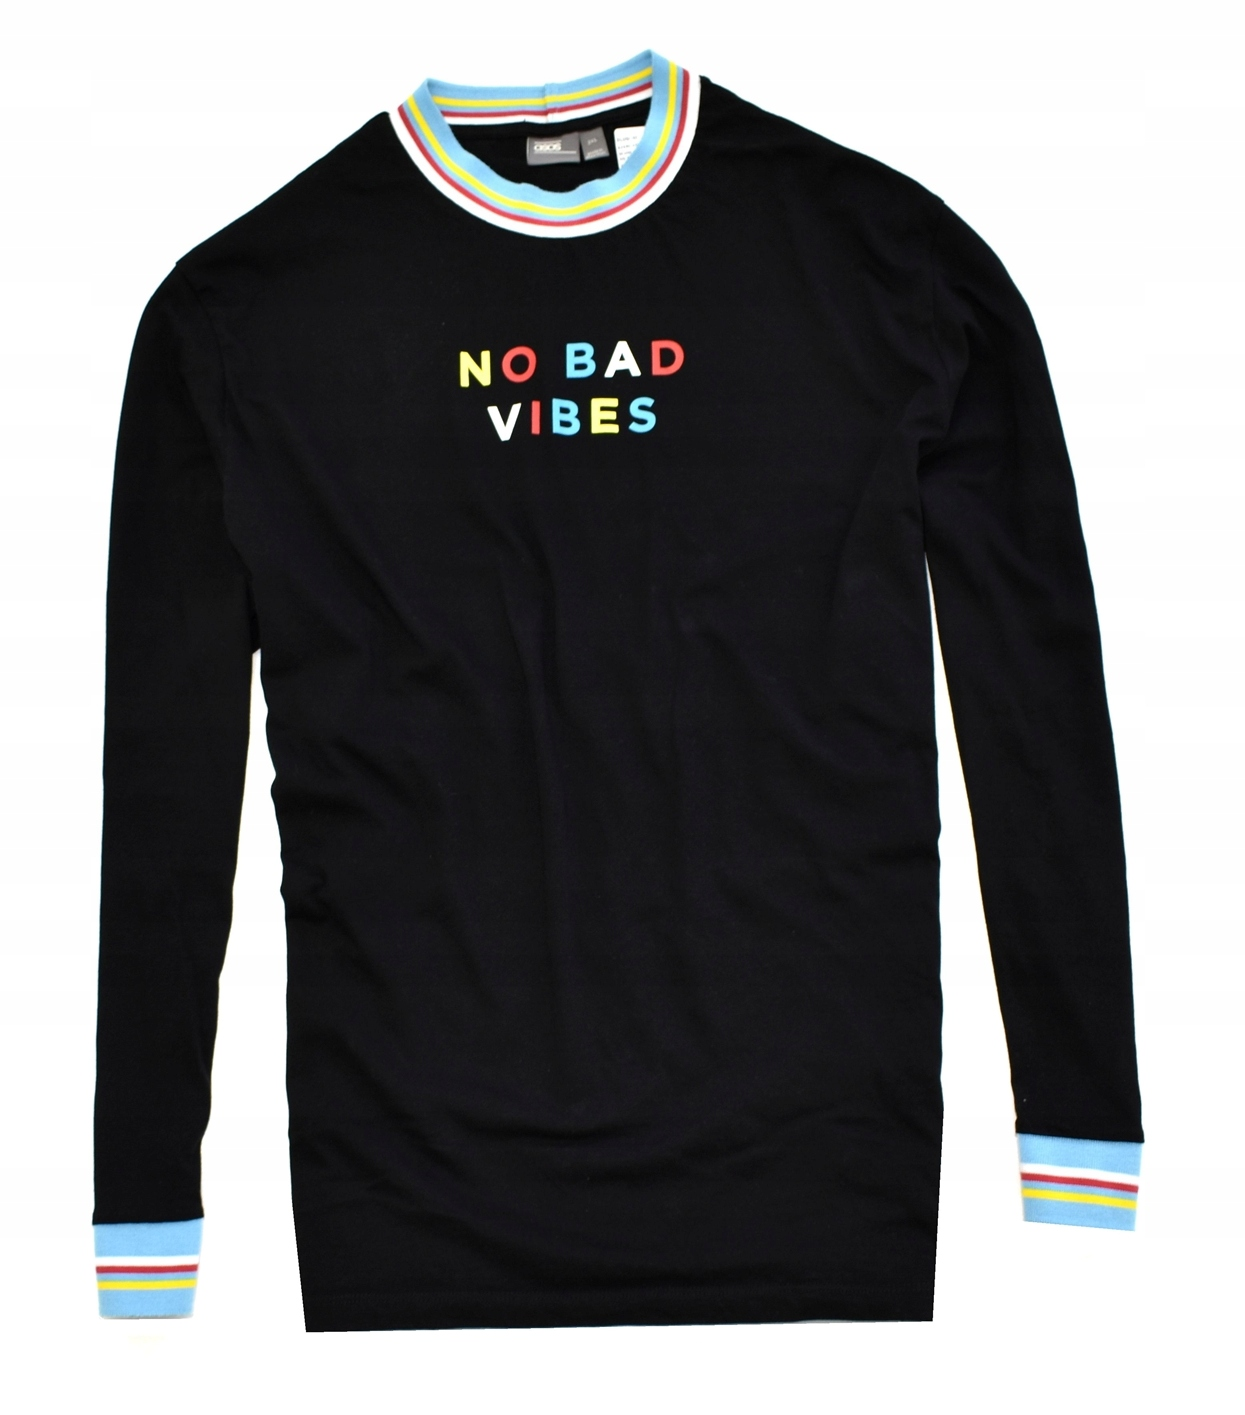 MM 230 ASOS_CHILLOUT NO BAD VIBES LONG SLEEVE_XXL